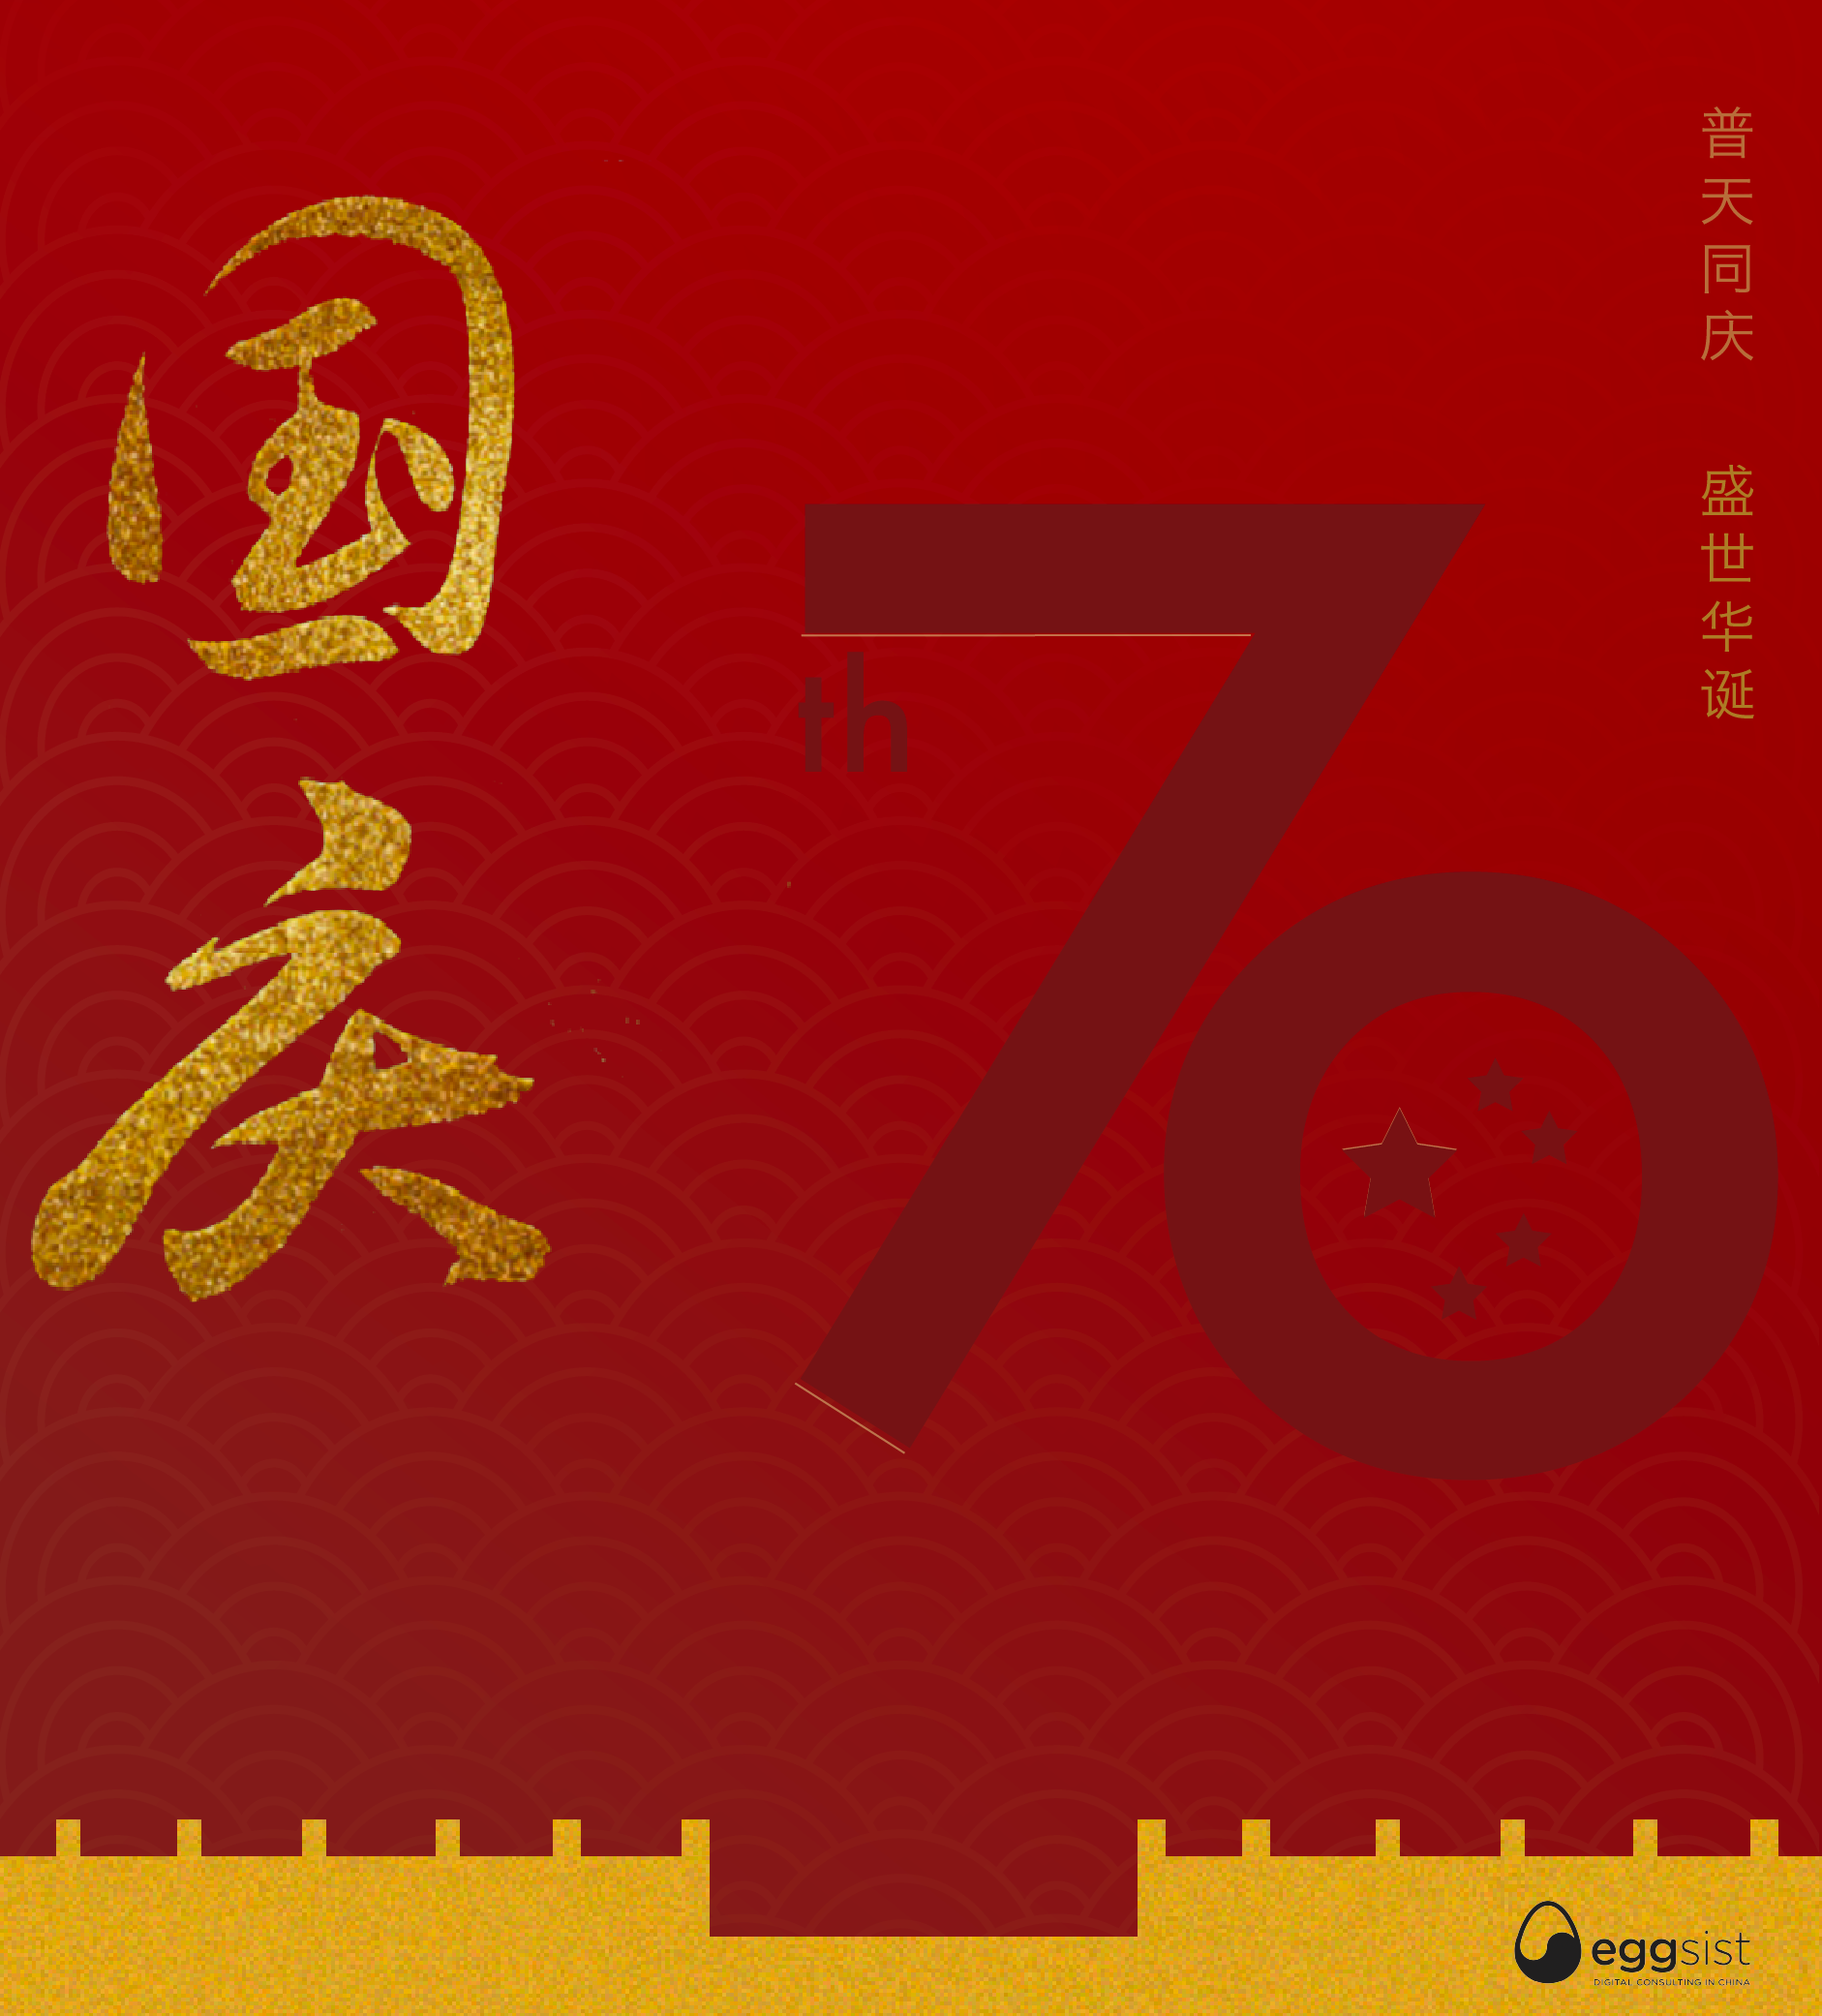 Chinese golden week - Digitexport